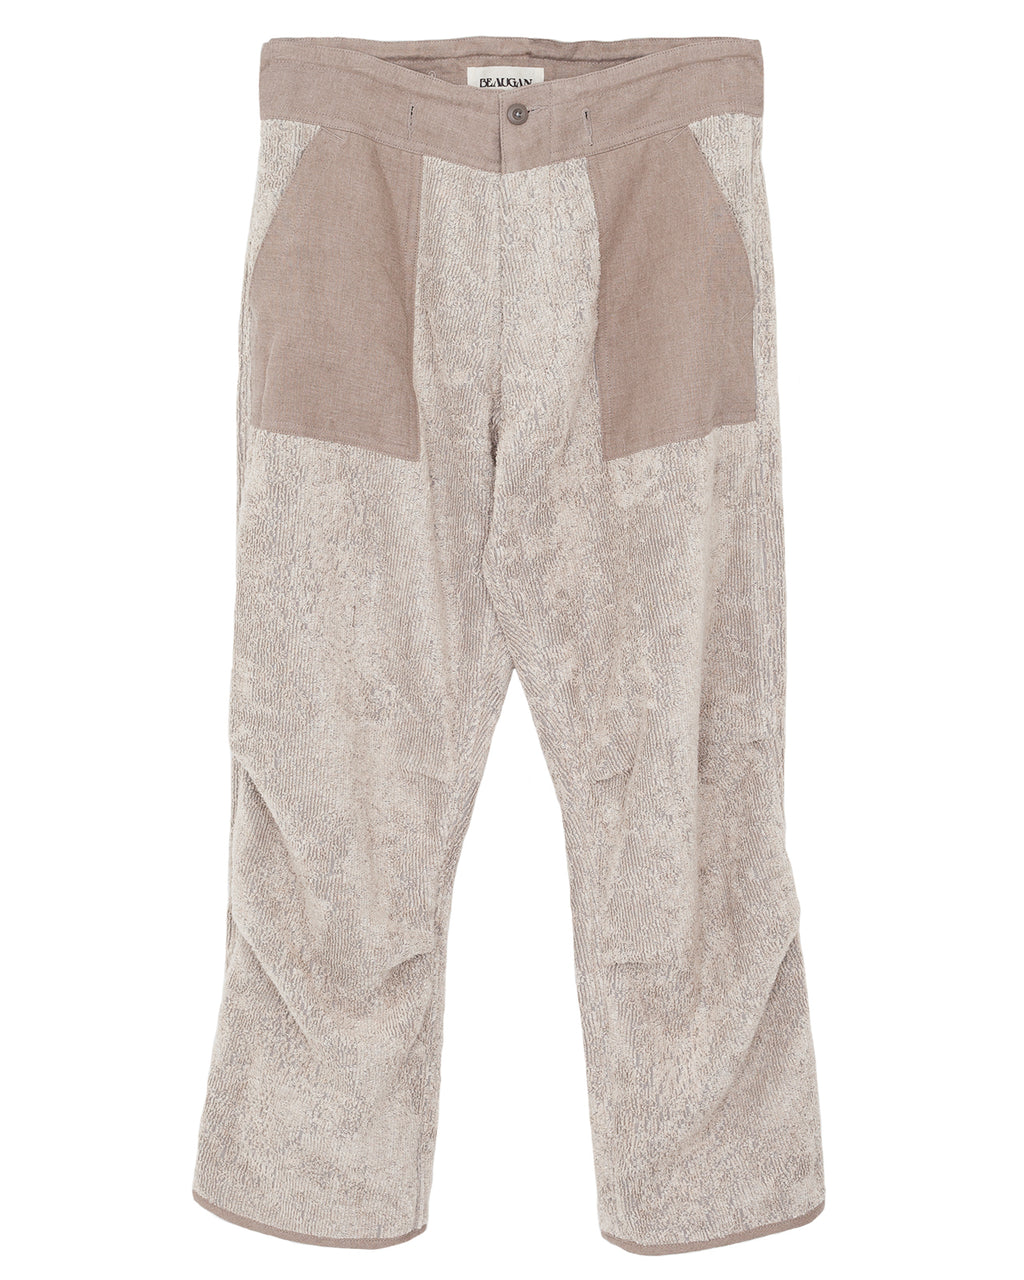 Beaugan Drawstring Liner Pants